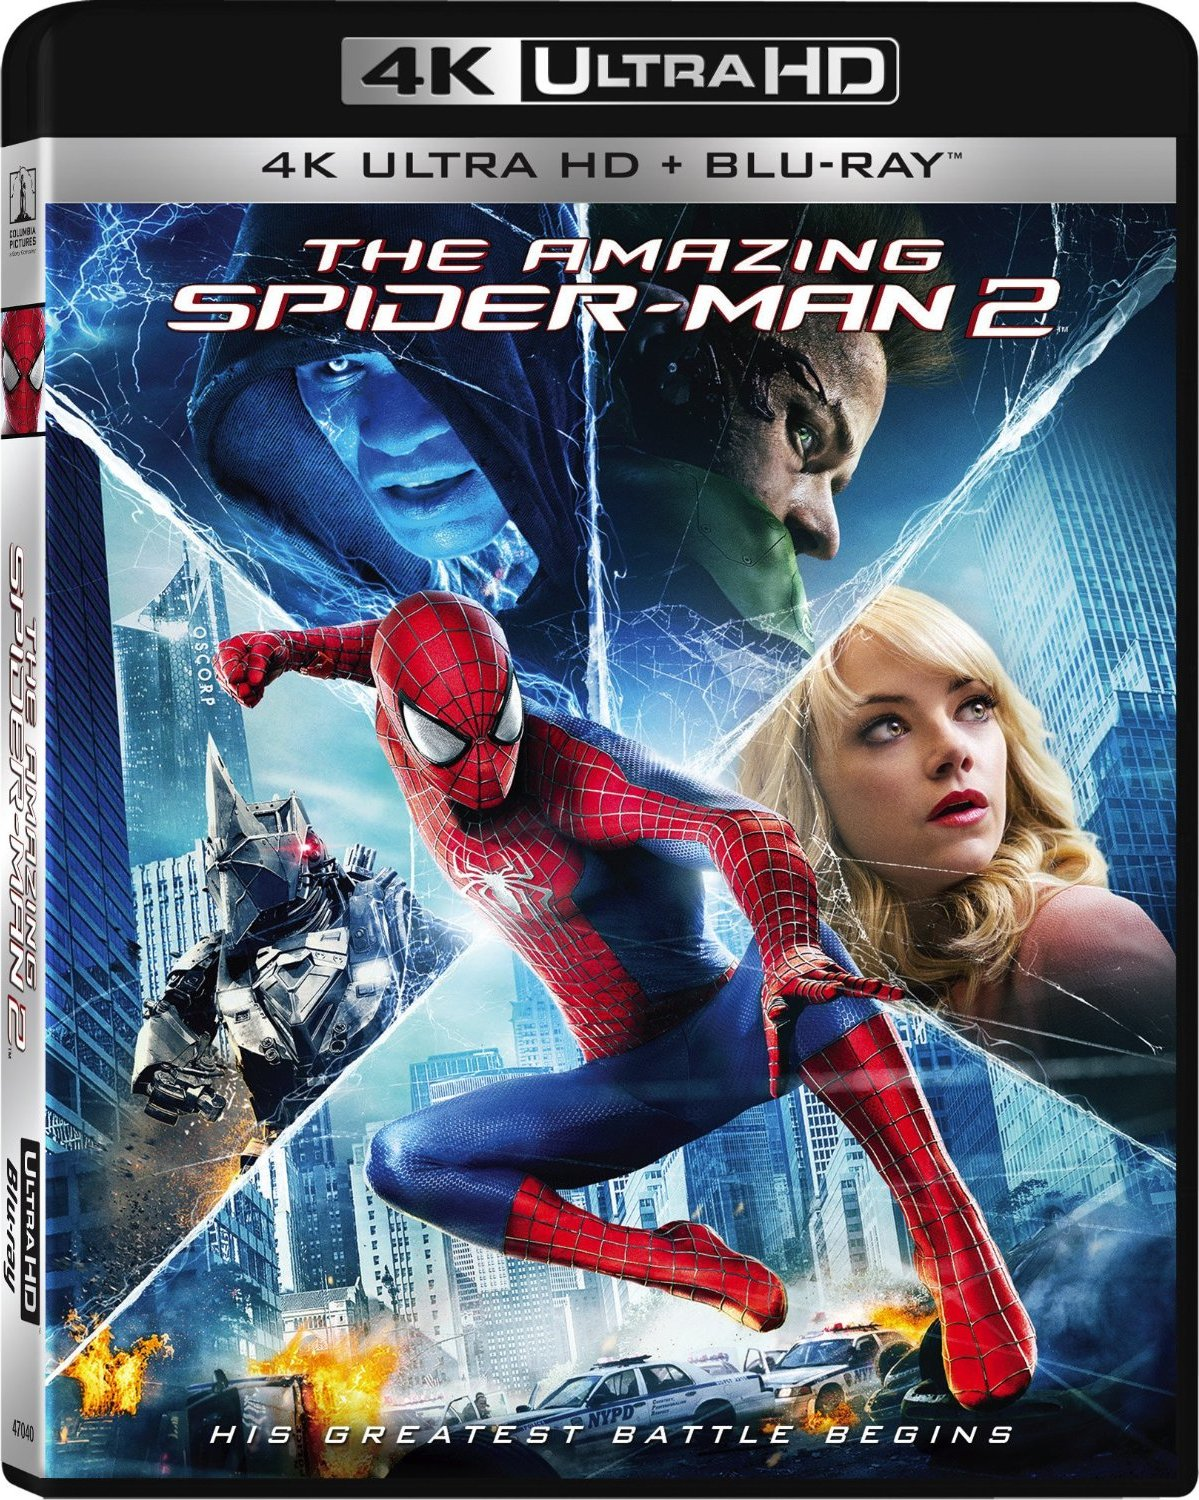 「4K美影」超凡蜘蛛侠2 The Amazing Spider-Man 2 (2014)「屏录版,非破解版」